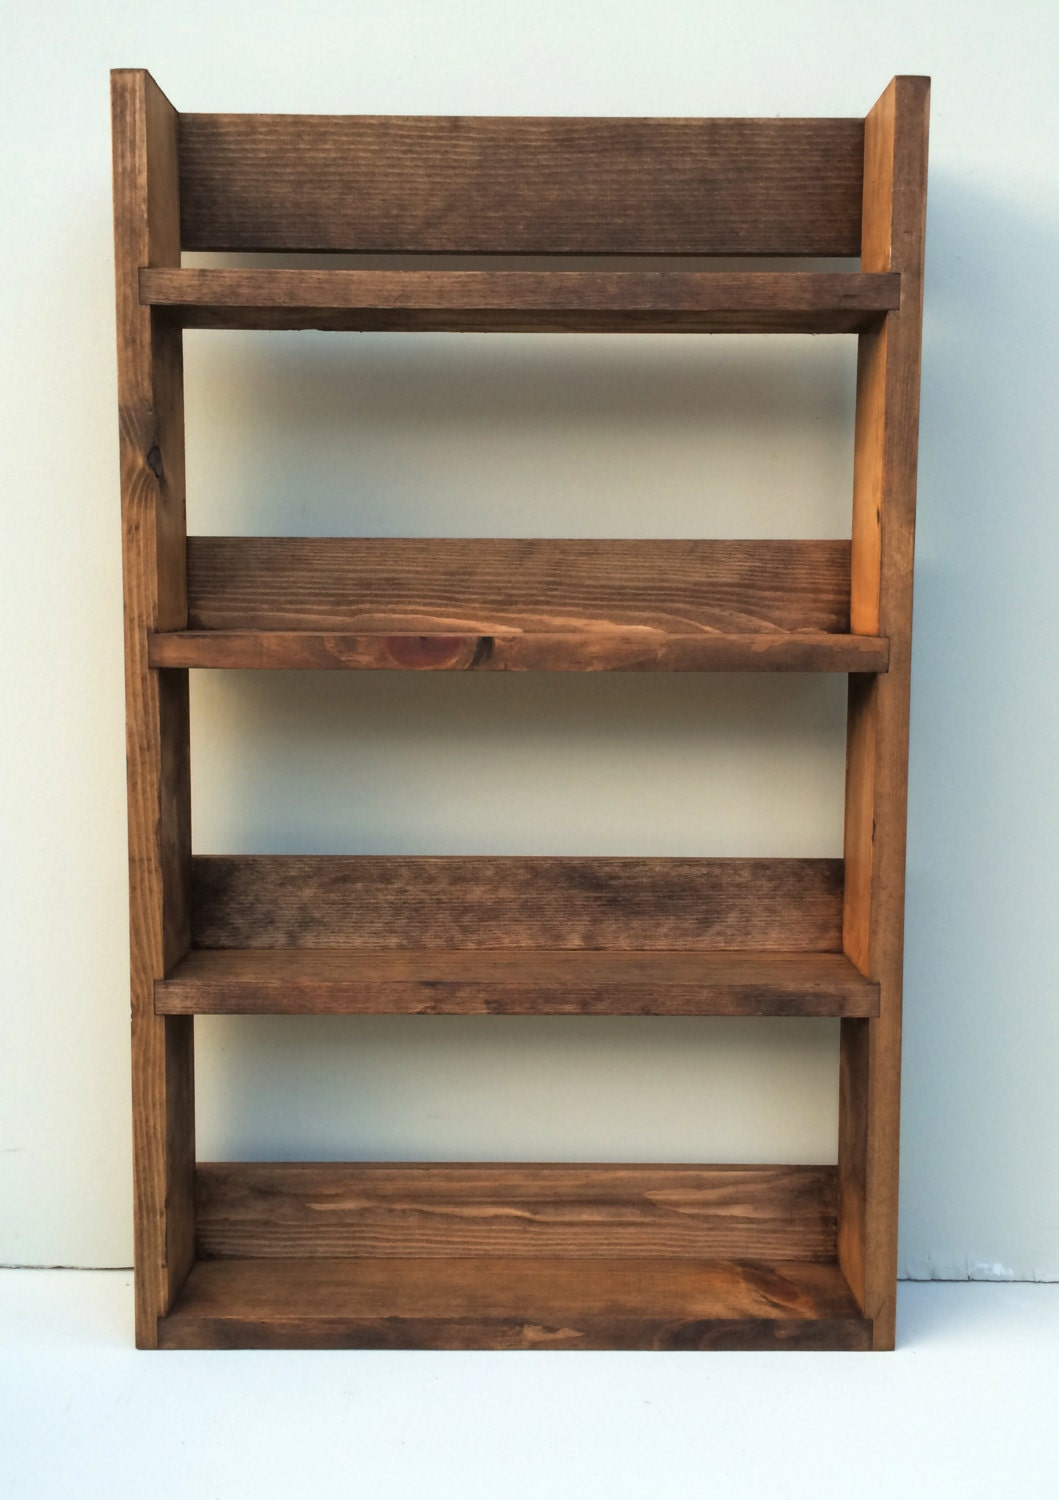 Rustic Spice Rack Made From Reclaimed Materials 4 Shelves